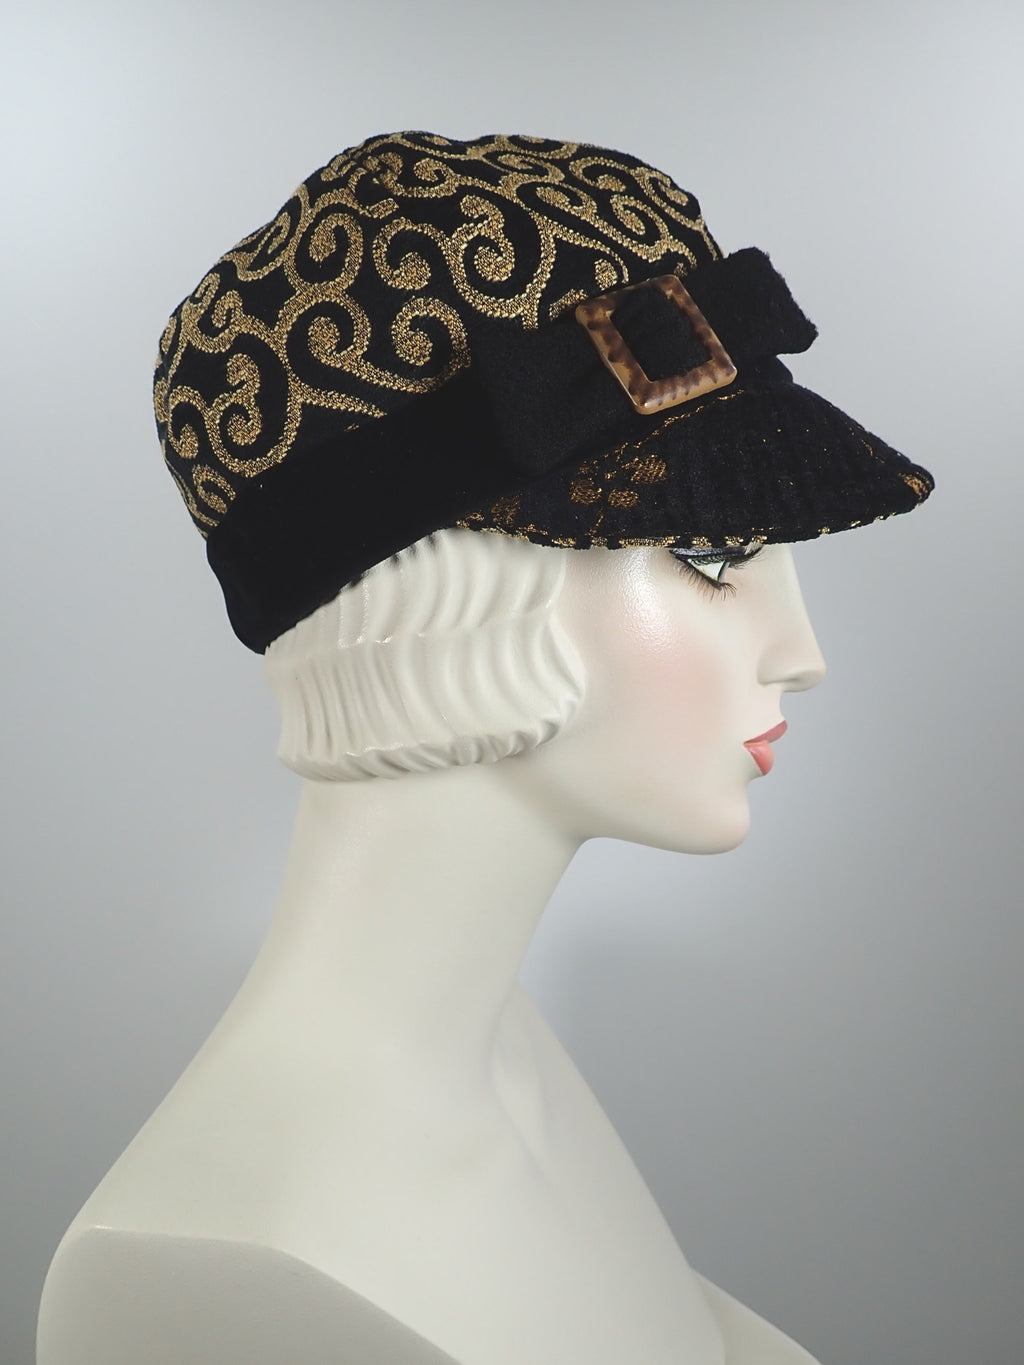 Women's Fall and Winter Cotton Velveteen Hat in Gold and Black - Baseball Style Newsboy Cap